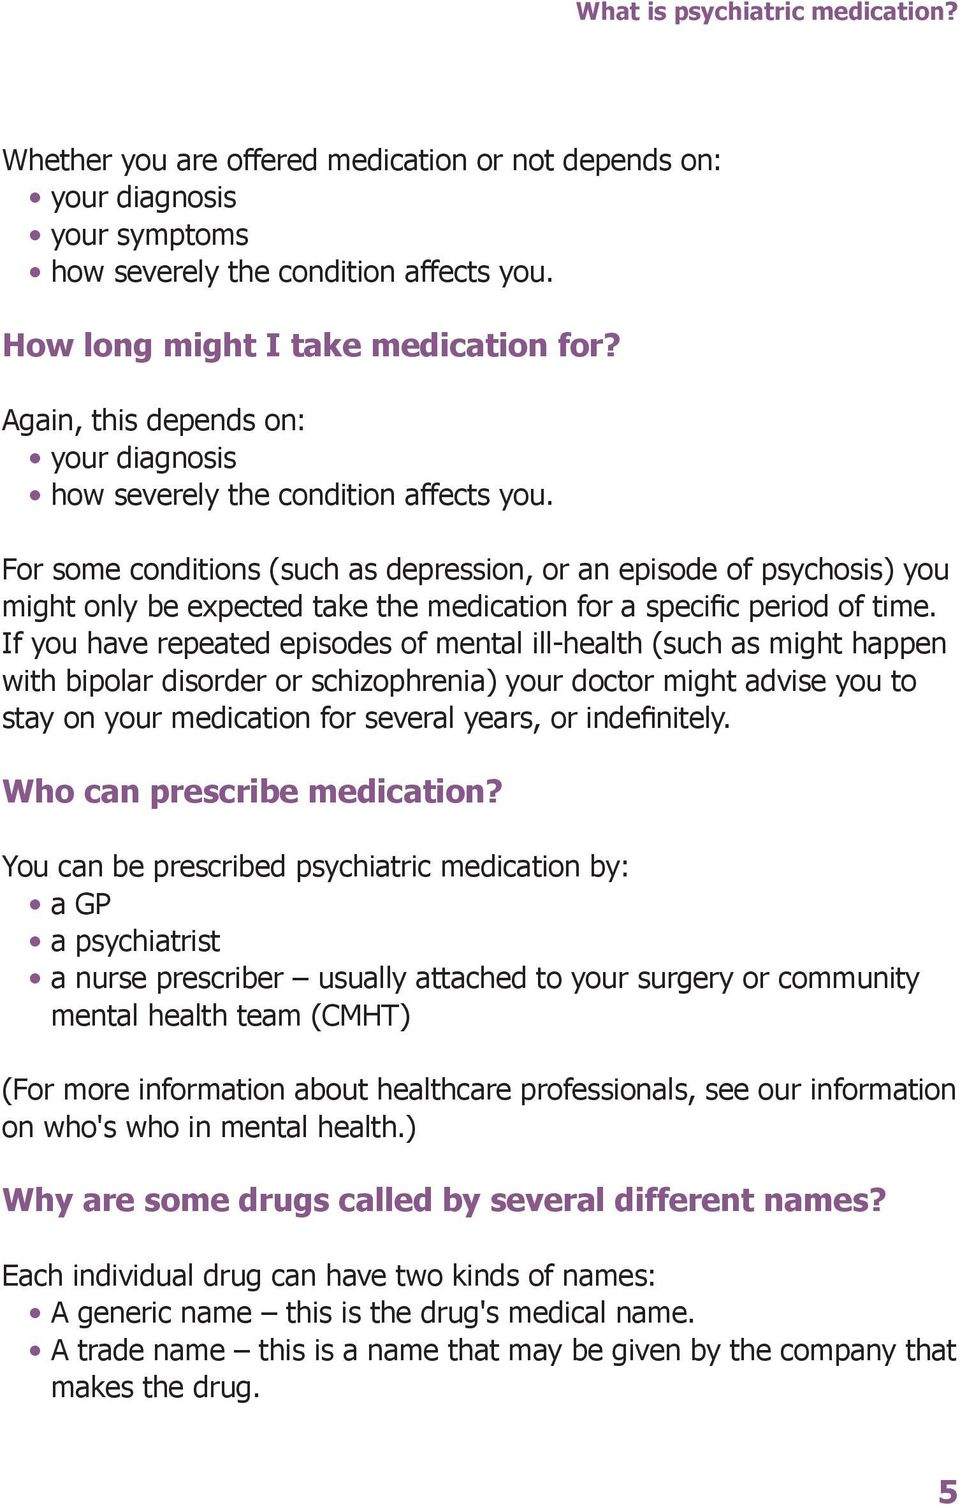 For some conditions (such as depression, or an episode of psychosis) you might only be expected take the medication for a specific period of time.